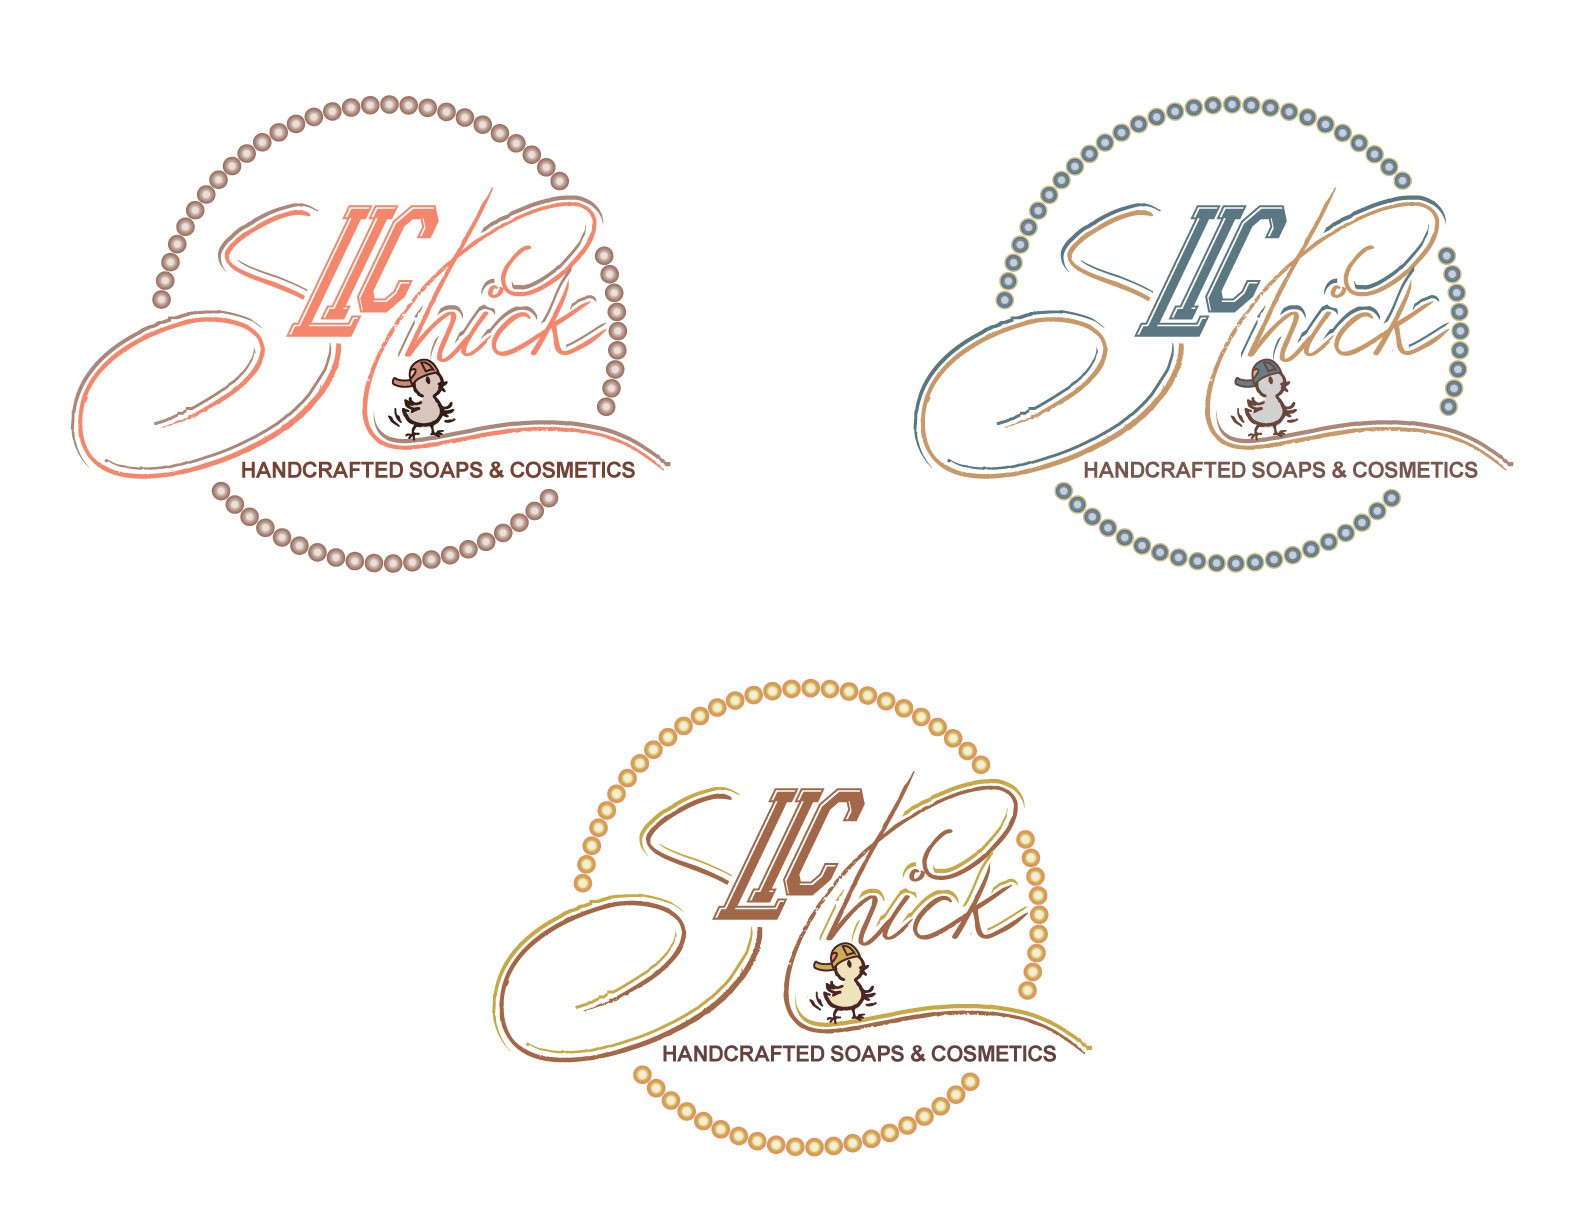 Loyal Customer. Give me a great logo and I'll continue to do business with you.